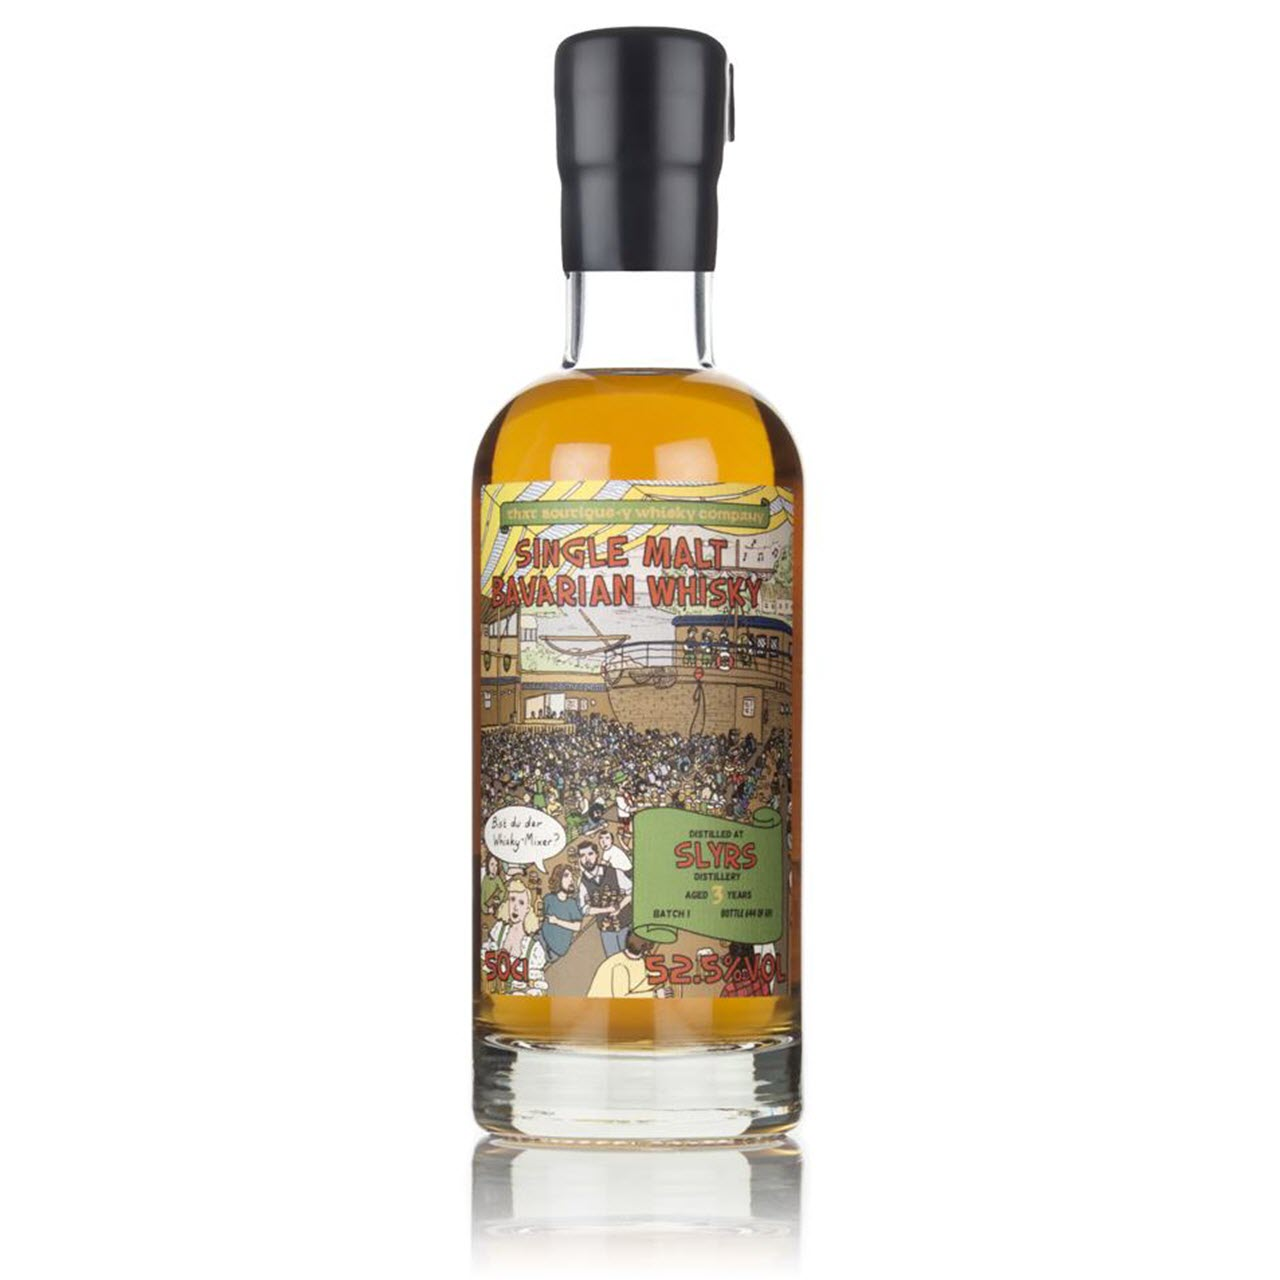 slyrs-that-boutiquey-whisky-company.jpg